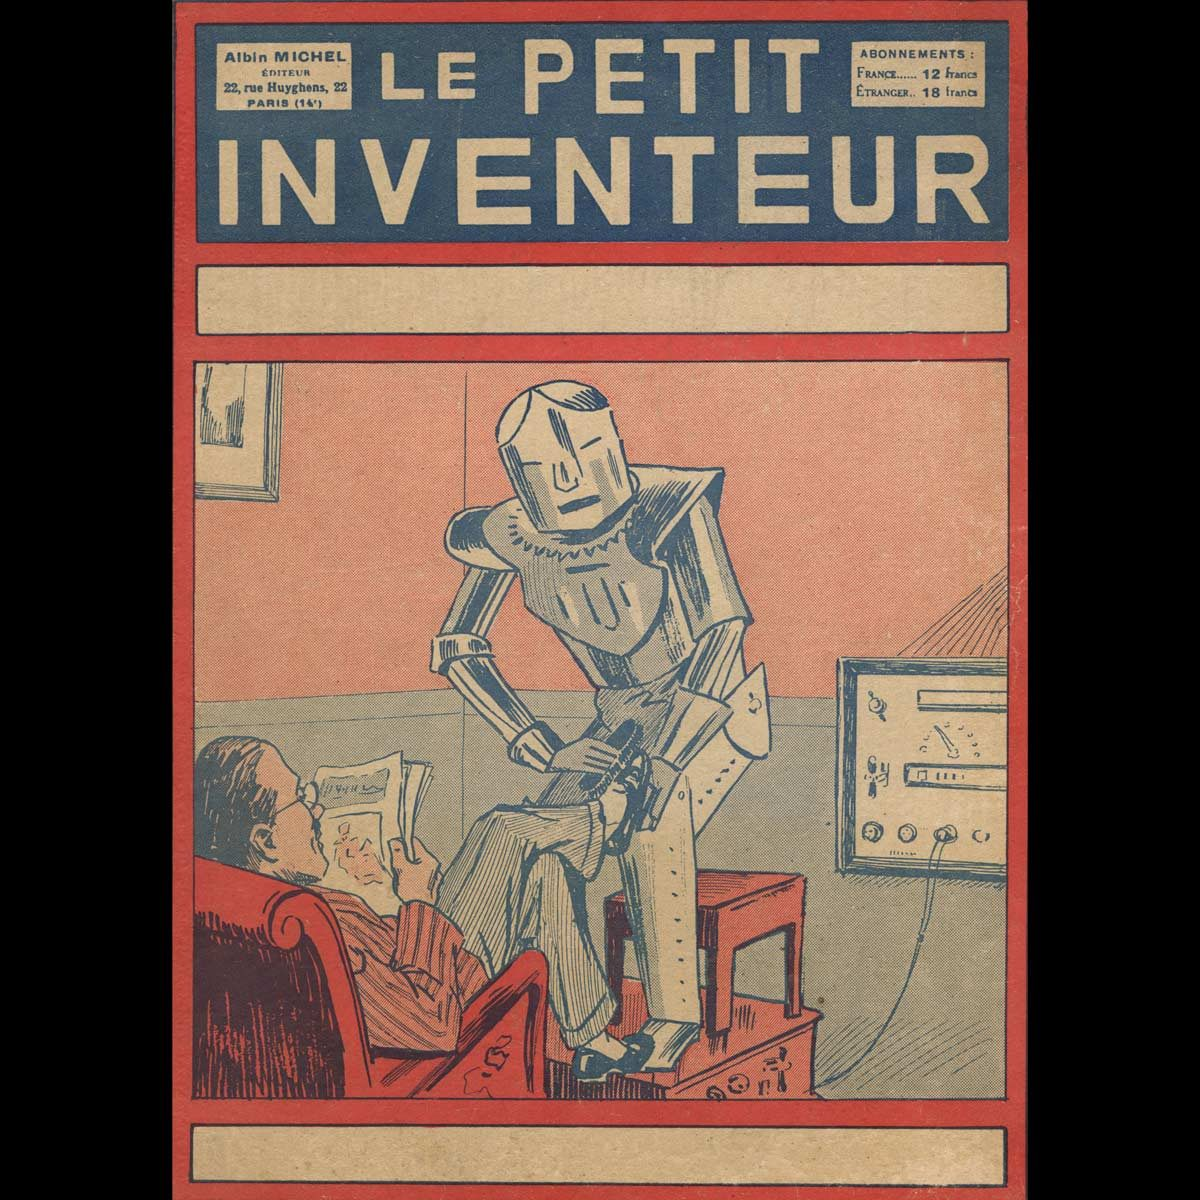 Illustration-depicts-a-robot-servant-helping-a-man from 1929